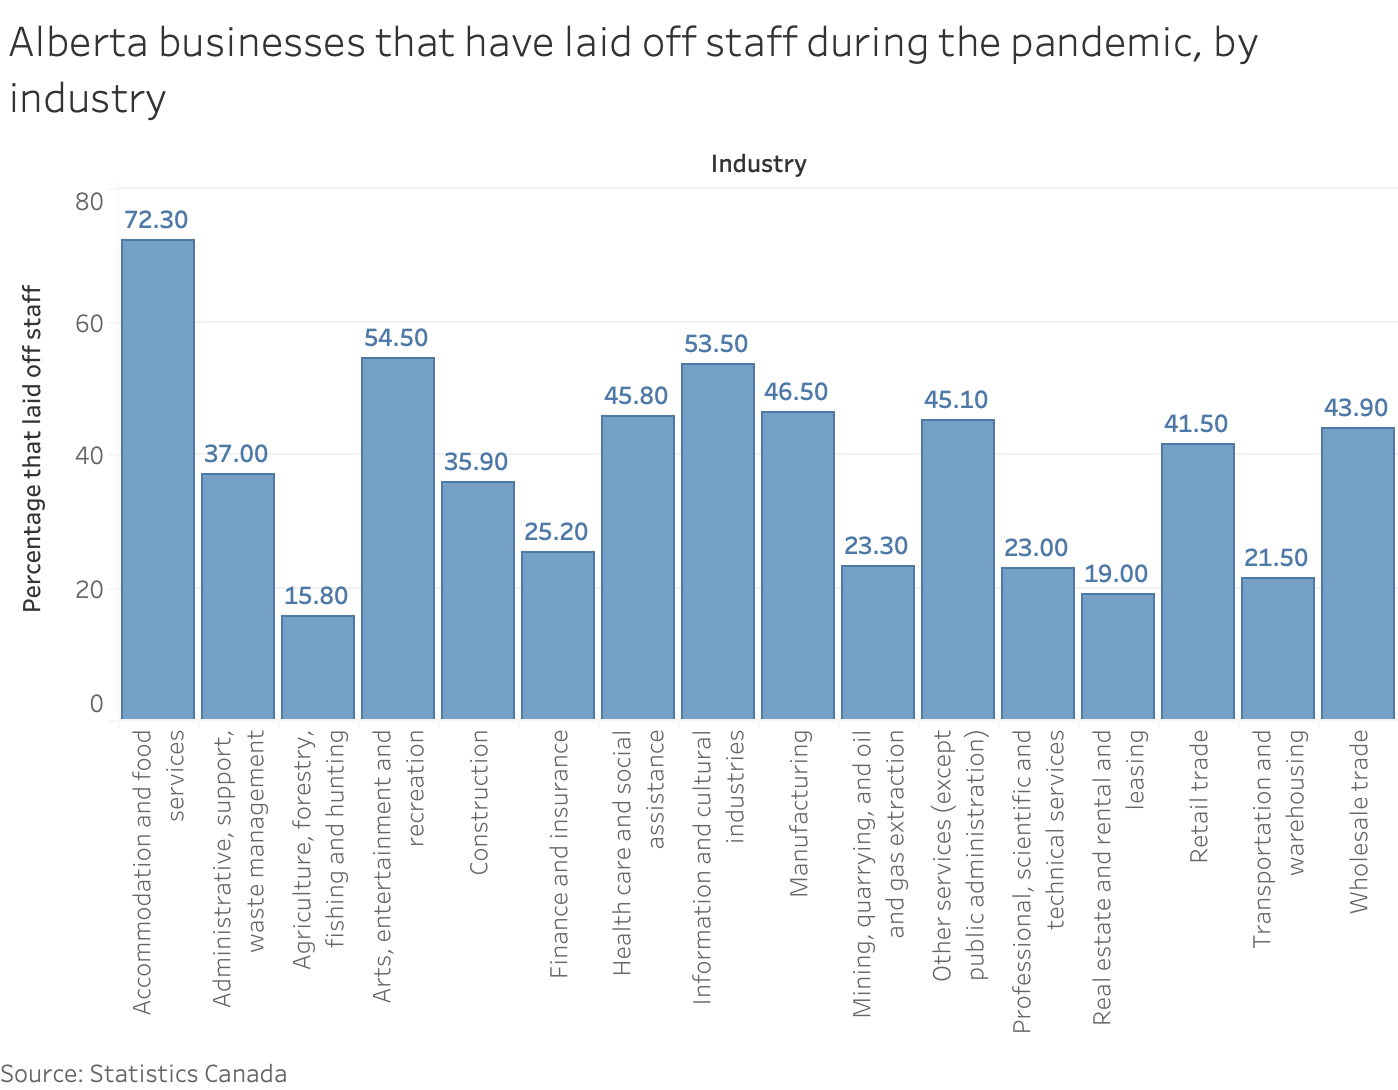 A chart depicting Alberta businesses that laid off staff during the pandemic, by industry.